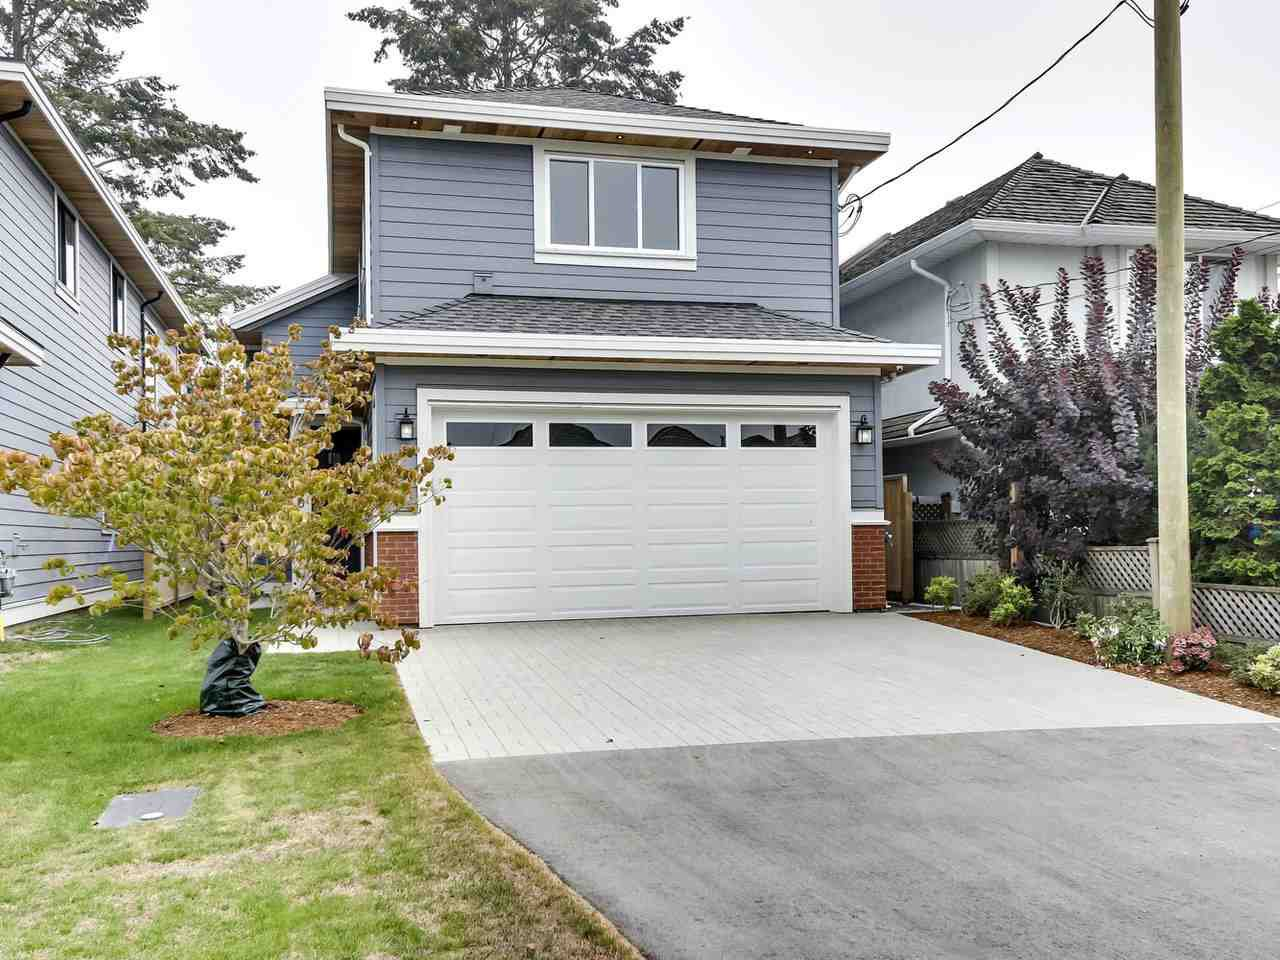 Main Photo: 11280 4TH Avenue in Richmond: Steveston Village House for sale : MLS®# R2499071